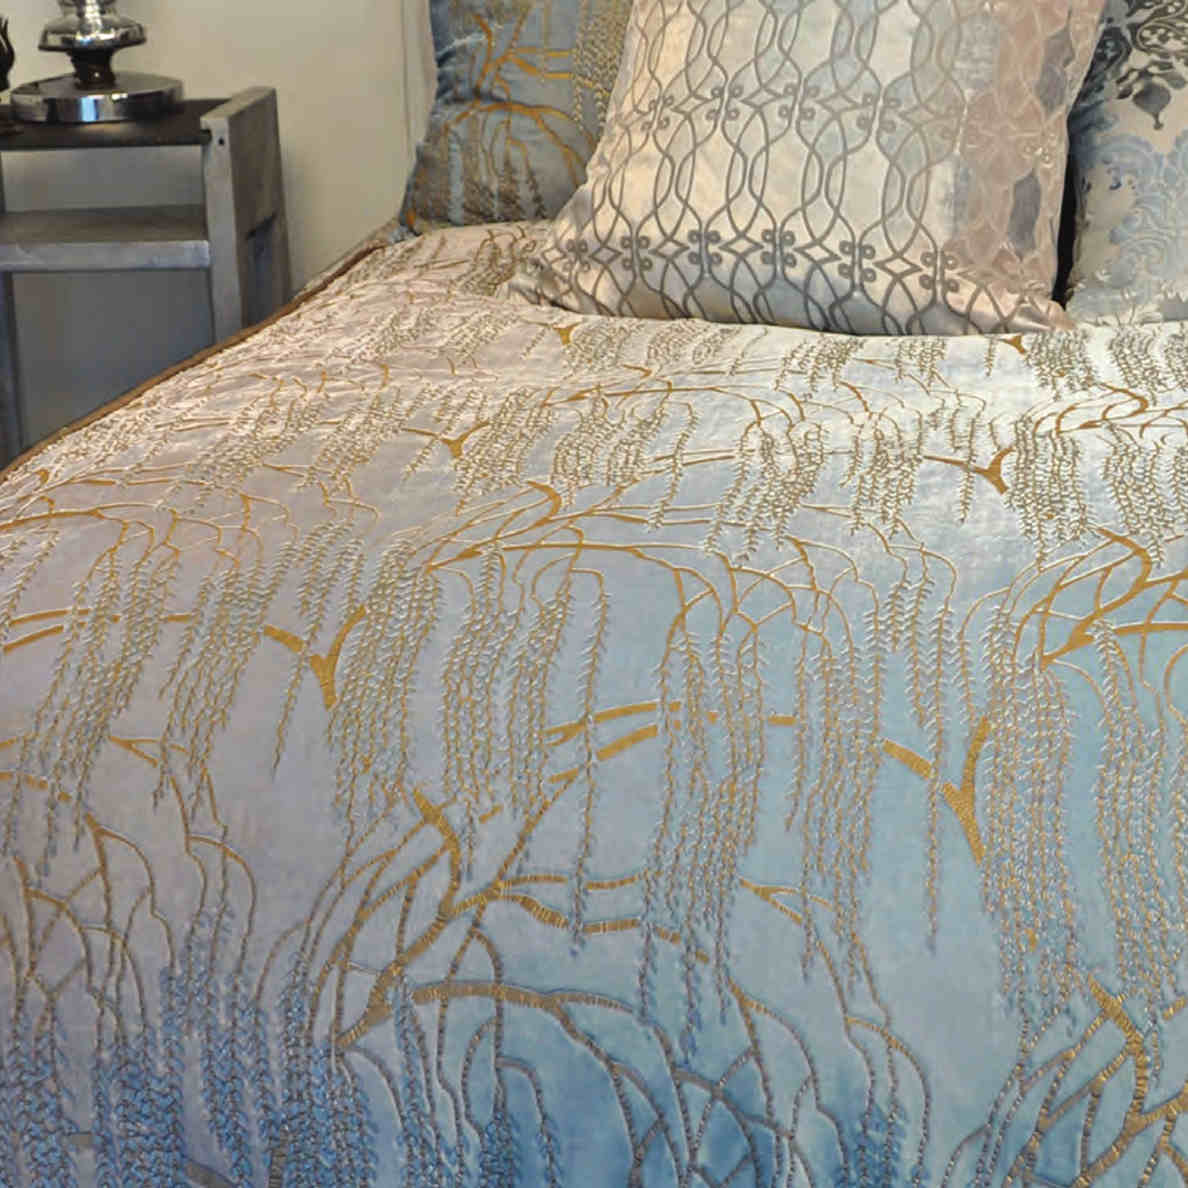 Kevin Obrien Studio Bedding Metallic Willow Robin Egg